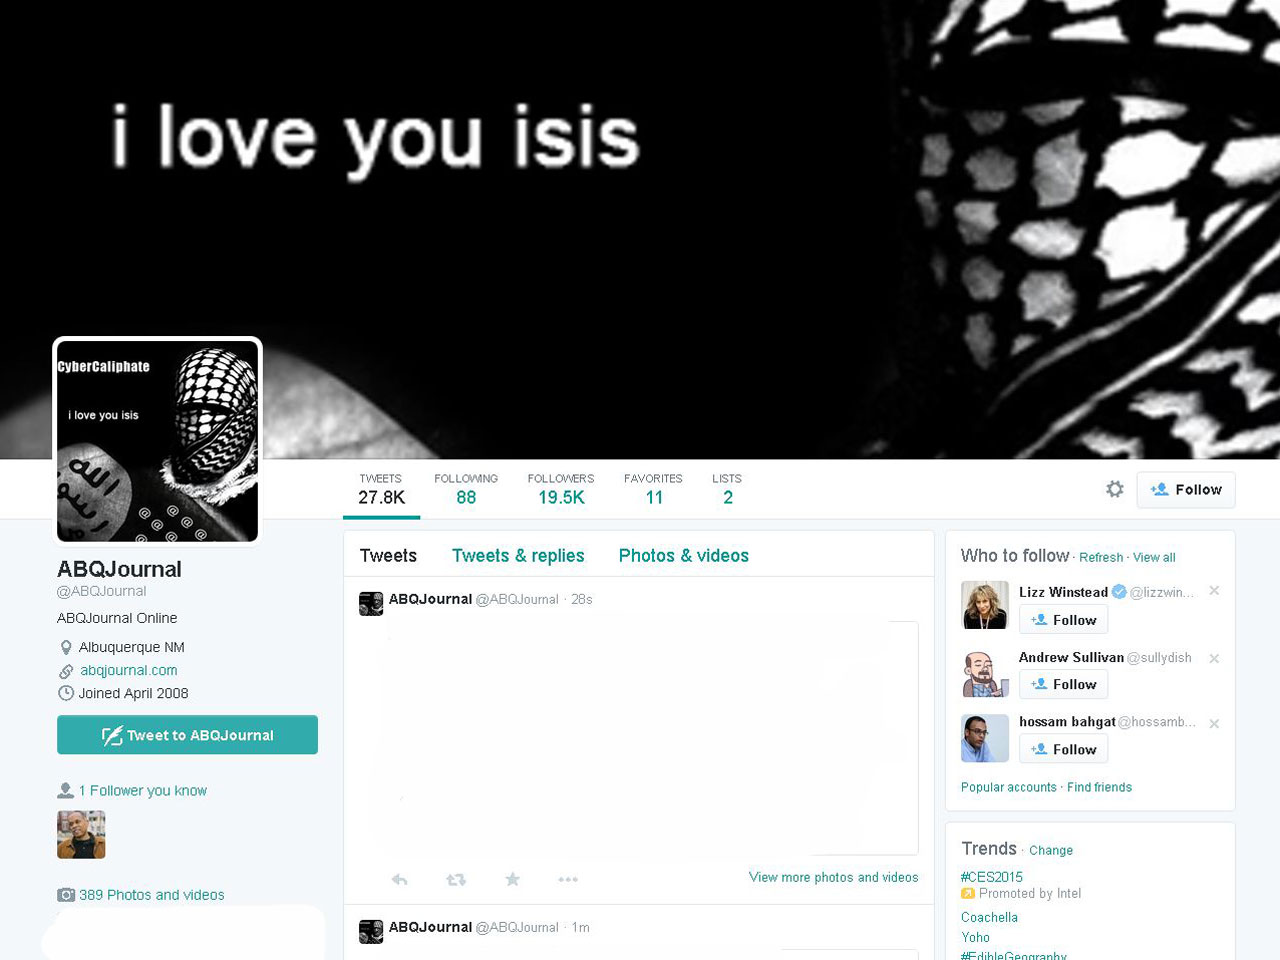 News websites, Twitter feeds hacked with pro-ISIS message - CBS News